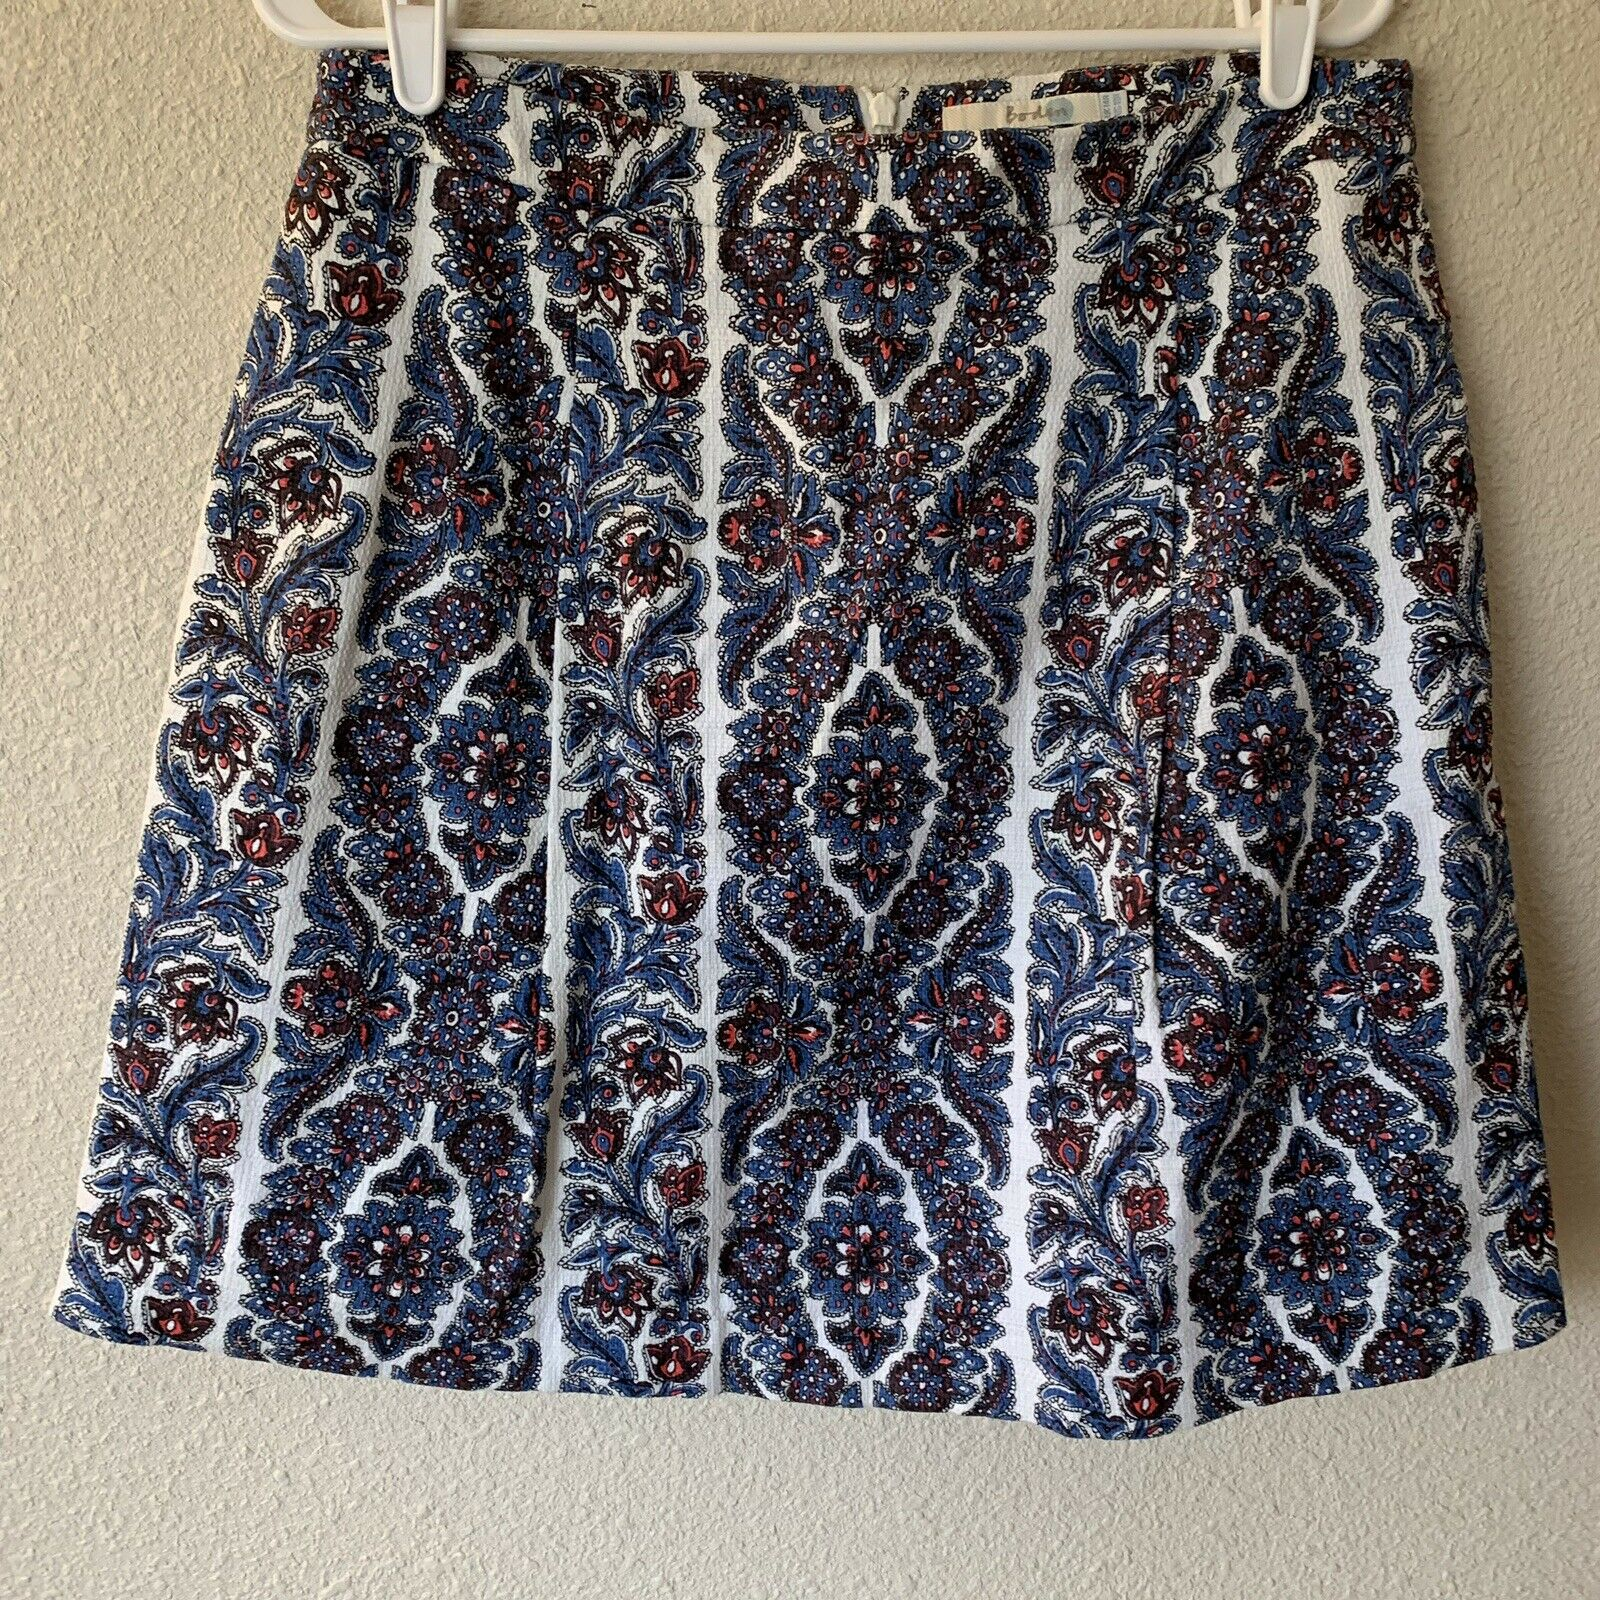 Boden Women's Skirt A-line Paisley Pleated Knee Length Size US10R UK14R